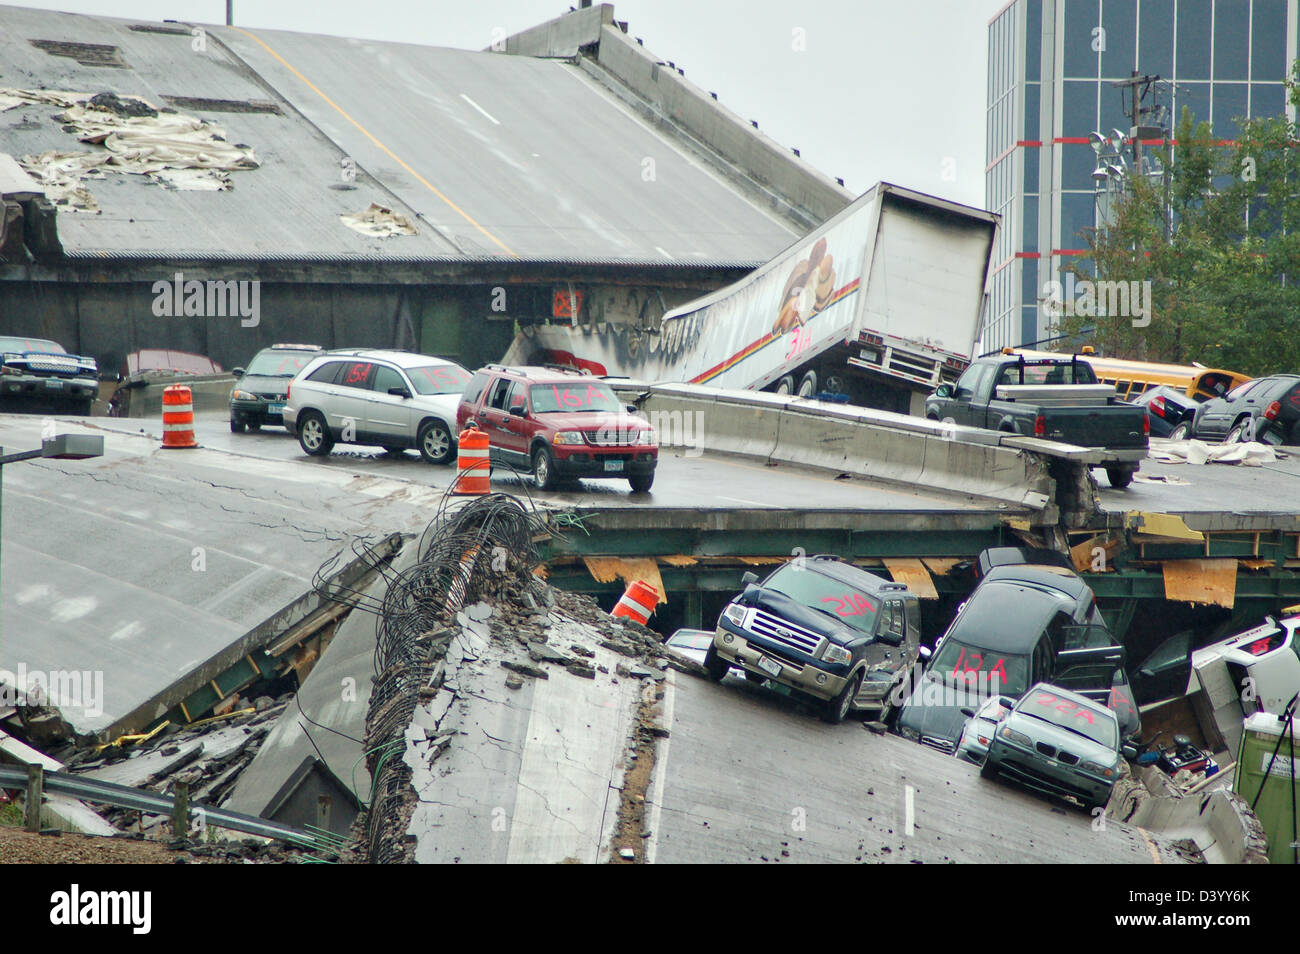 View of the remains of the I-35 bridge collapse August 4, 2007 in Minneapolis, MN. The bridge suddenly collapsed - Stock Image